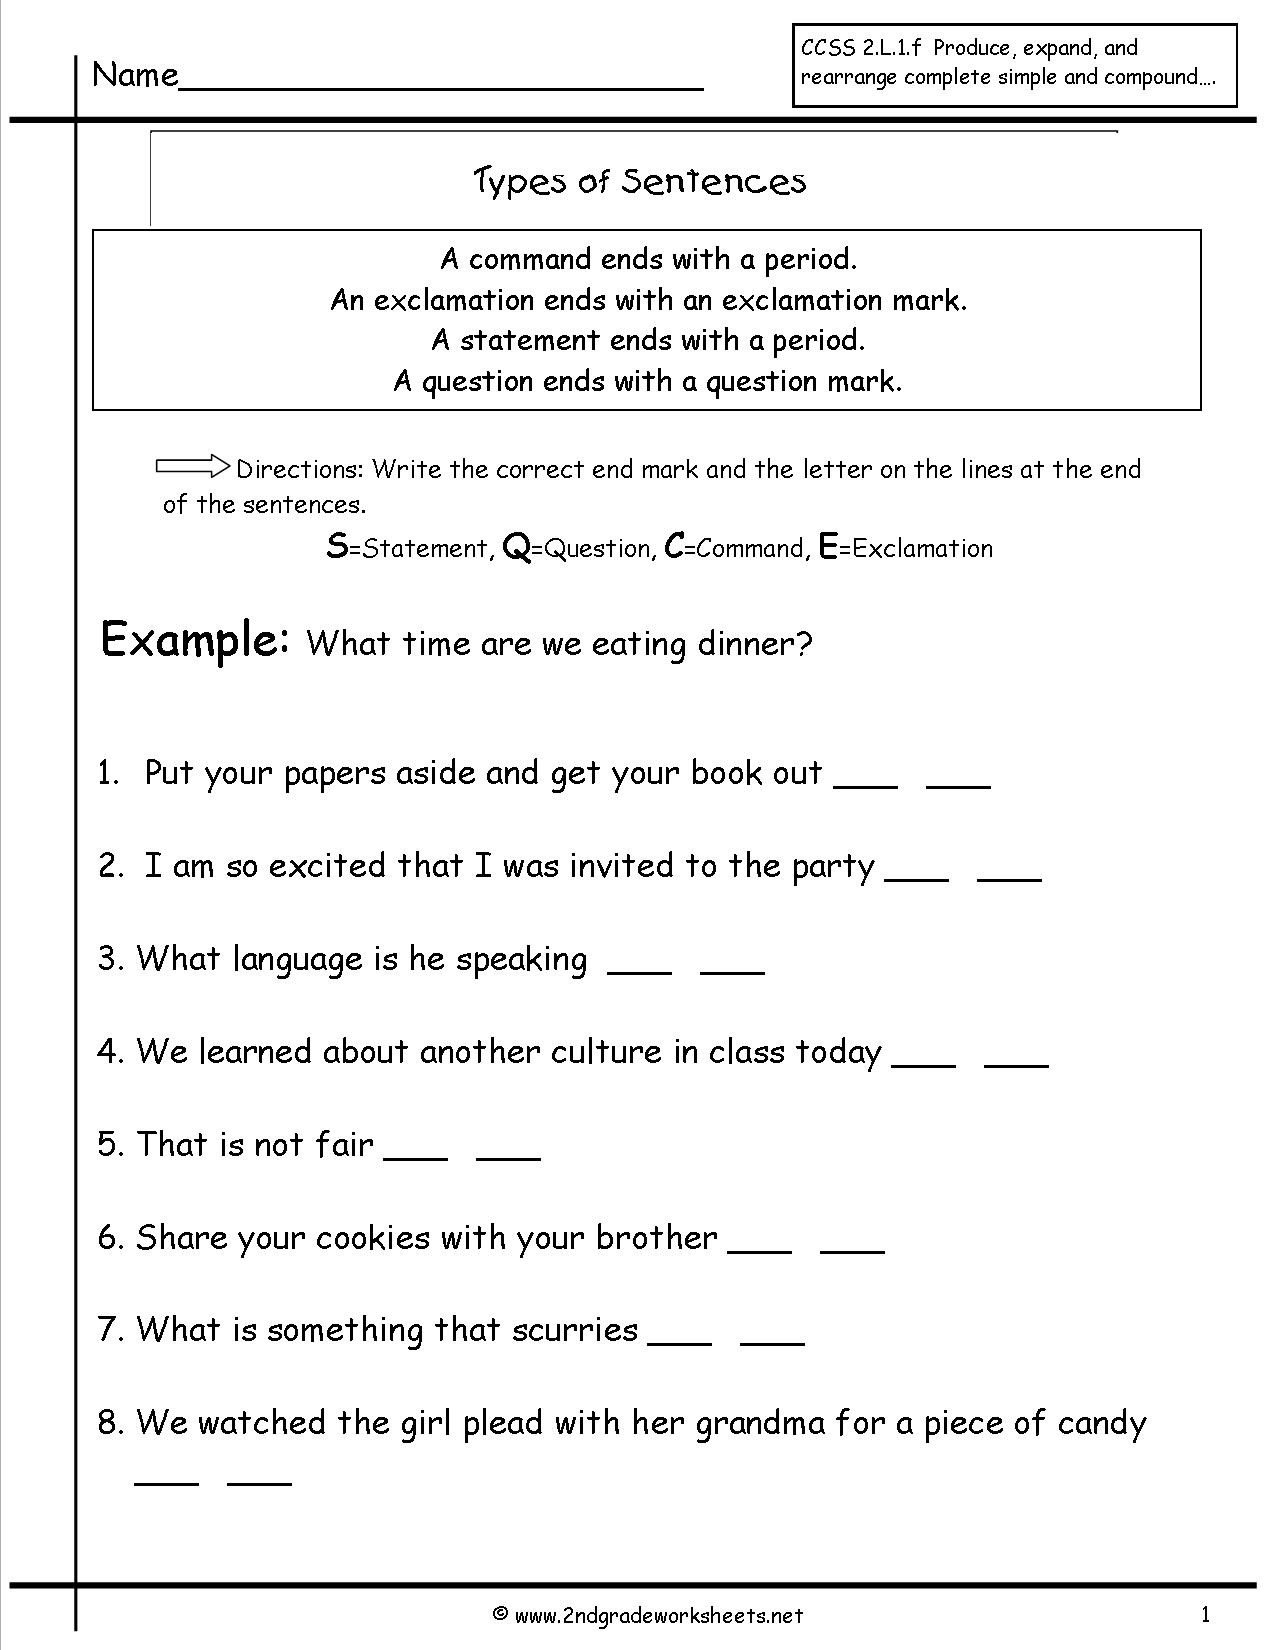 Improving Sentence Structure Worksheets Second Grade Sentences Worksheets Ccss 4th Sentence